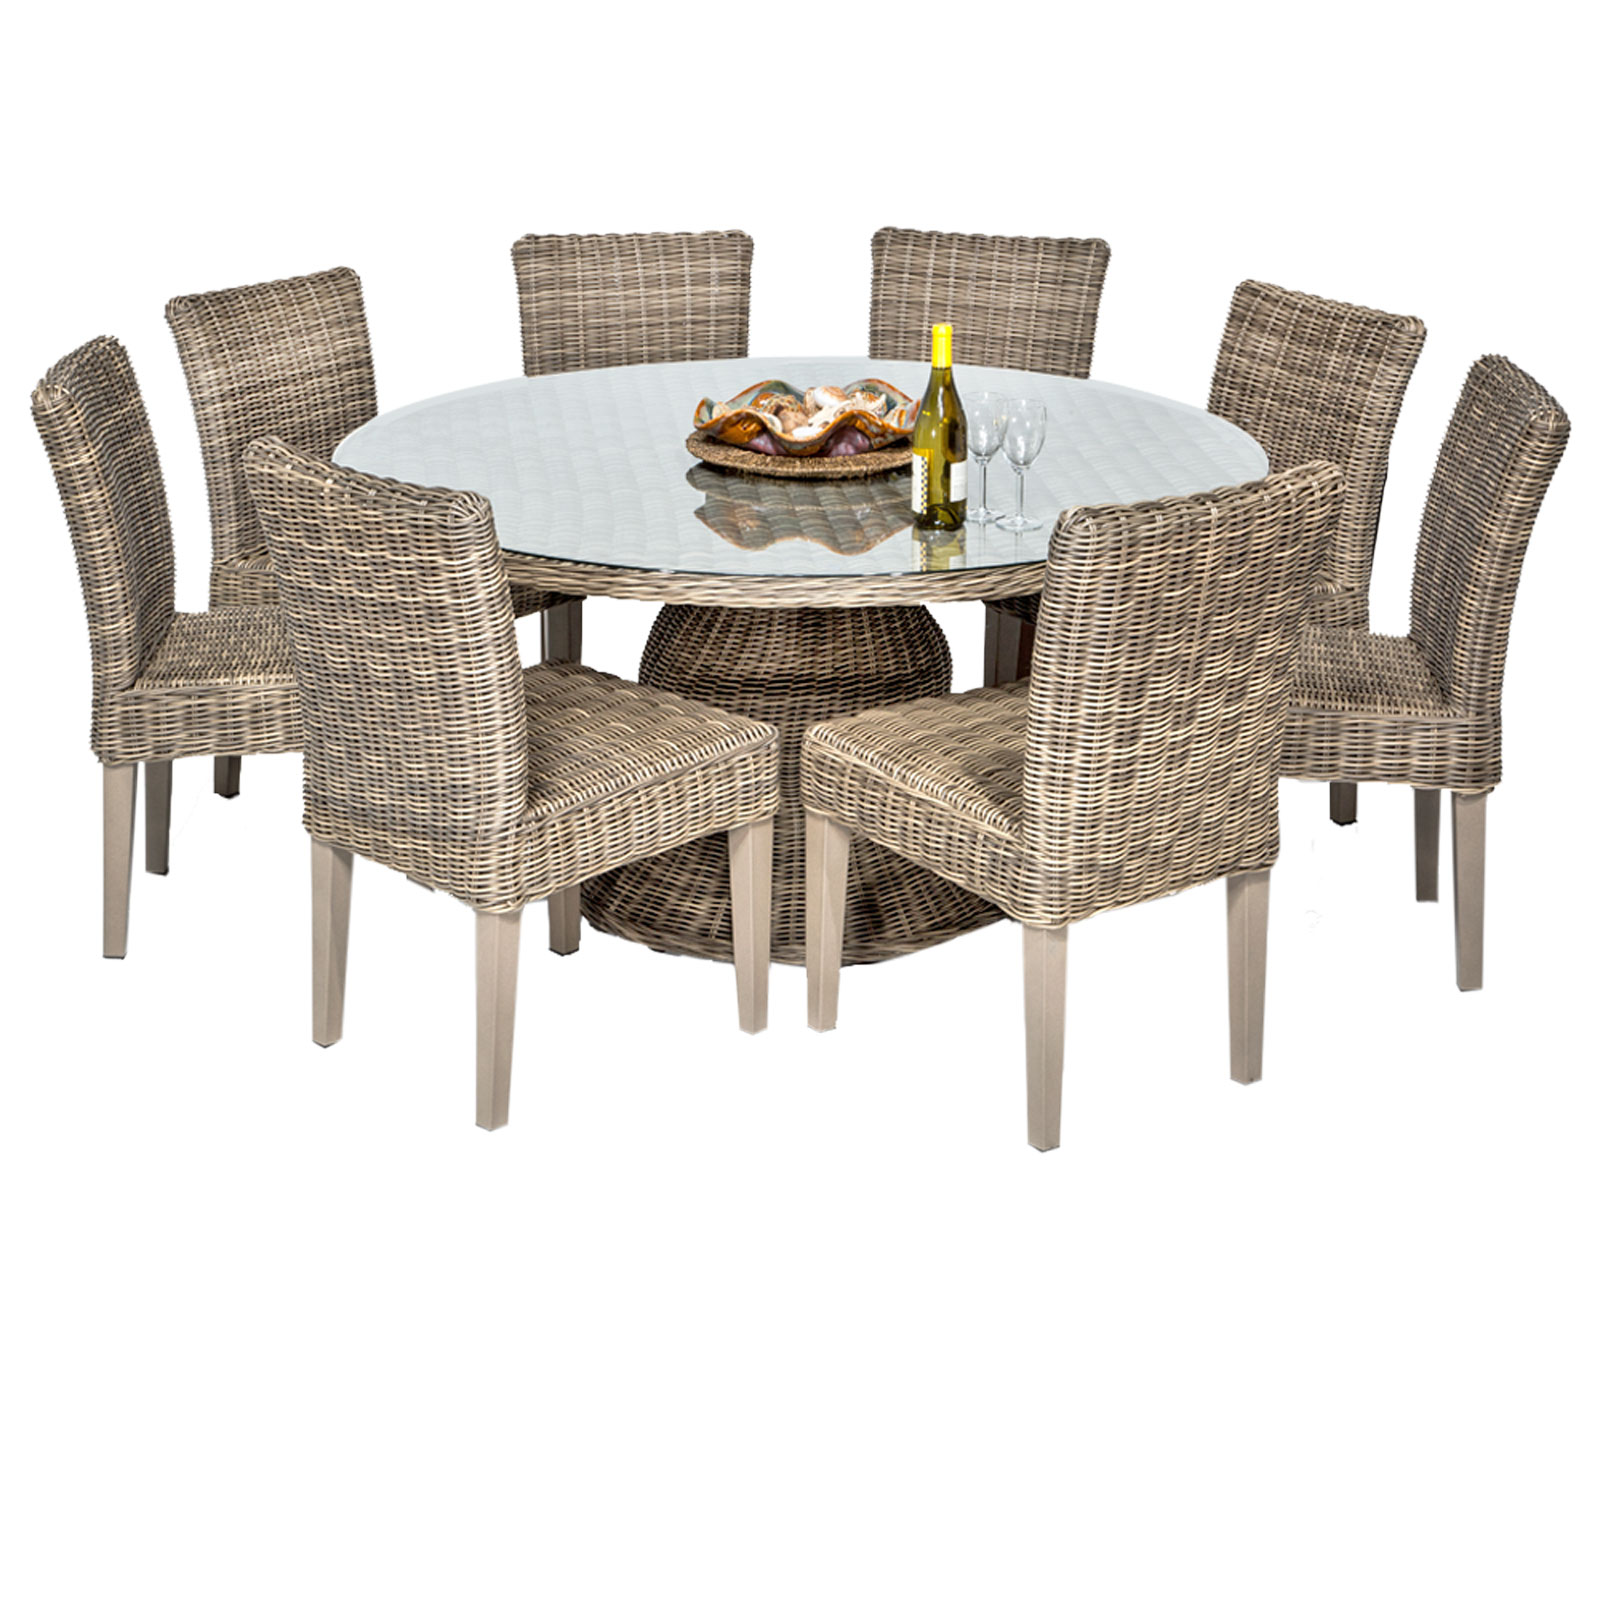 Royal Vintage Stone 60 Inch Outdoor Patio Dining Table With 8 Chairs